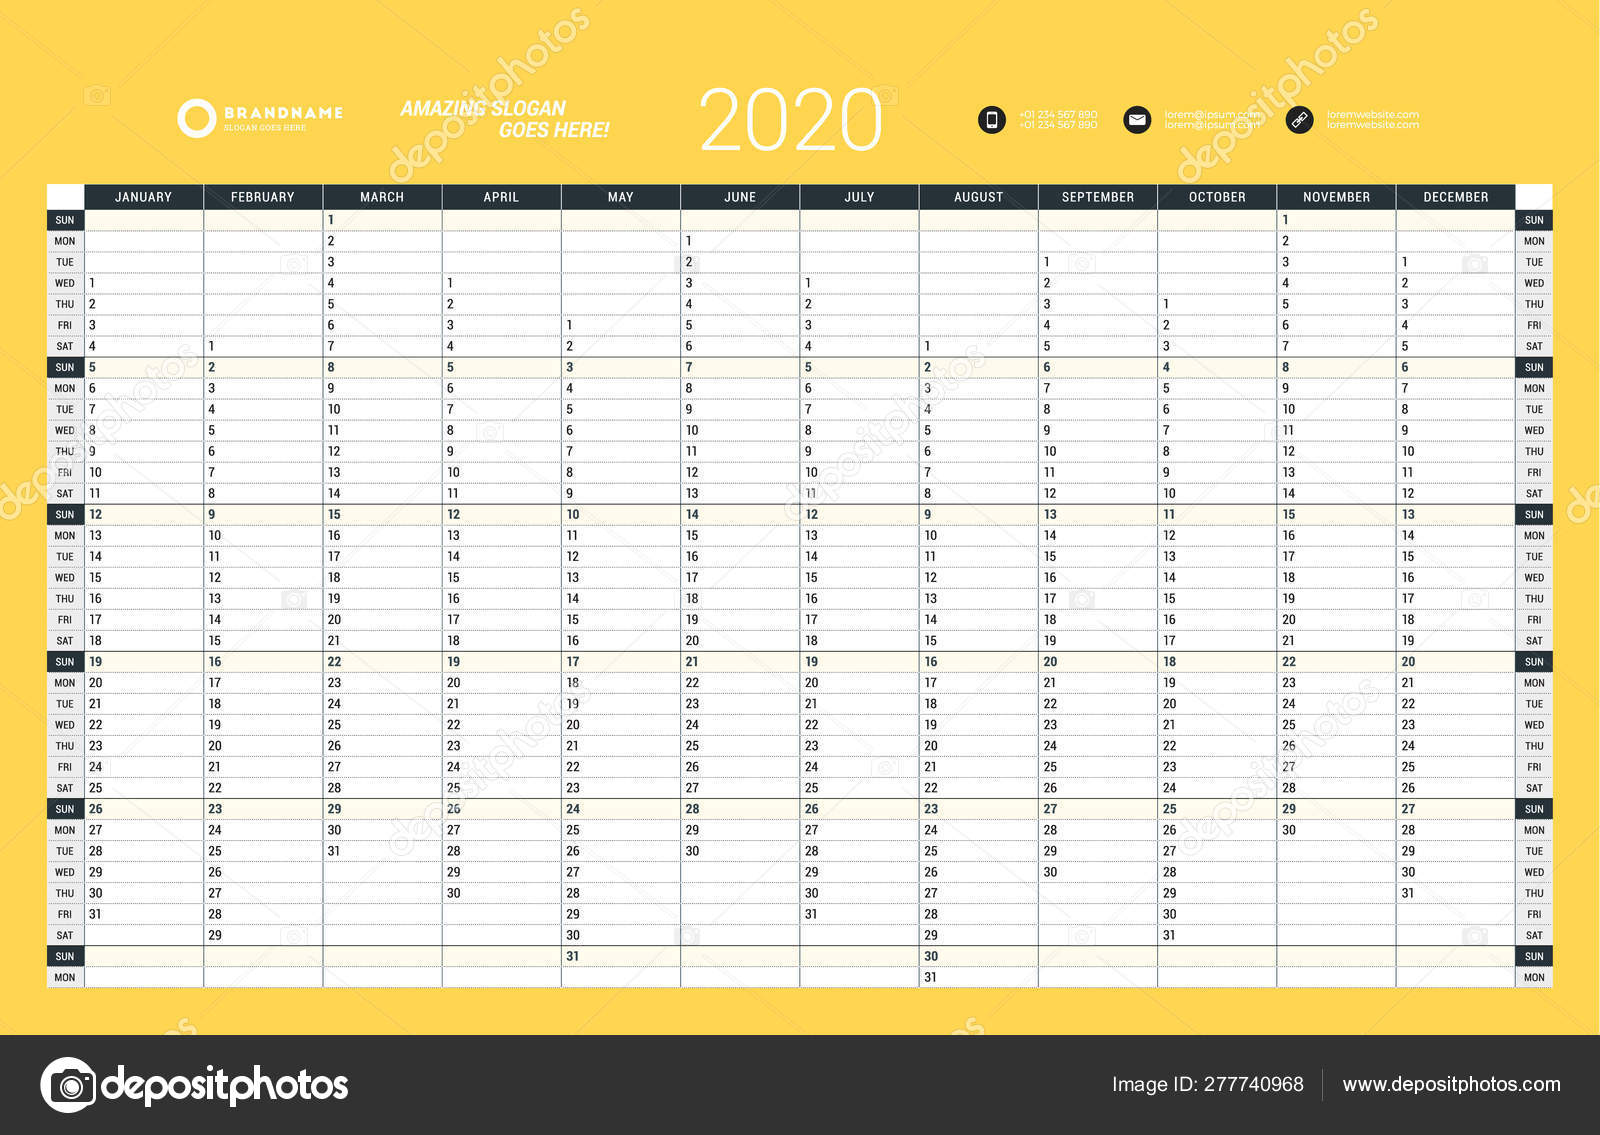 image relating to Yearly Planner Template referred to as Wall calendar every year planner template for 2020. Vector